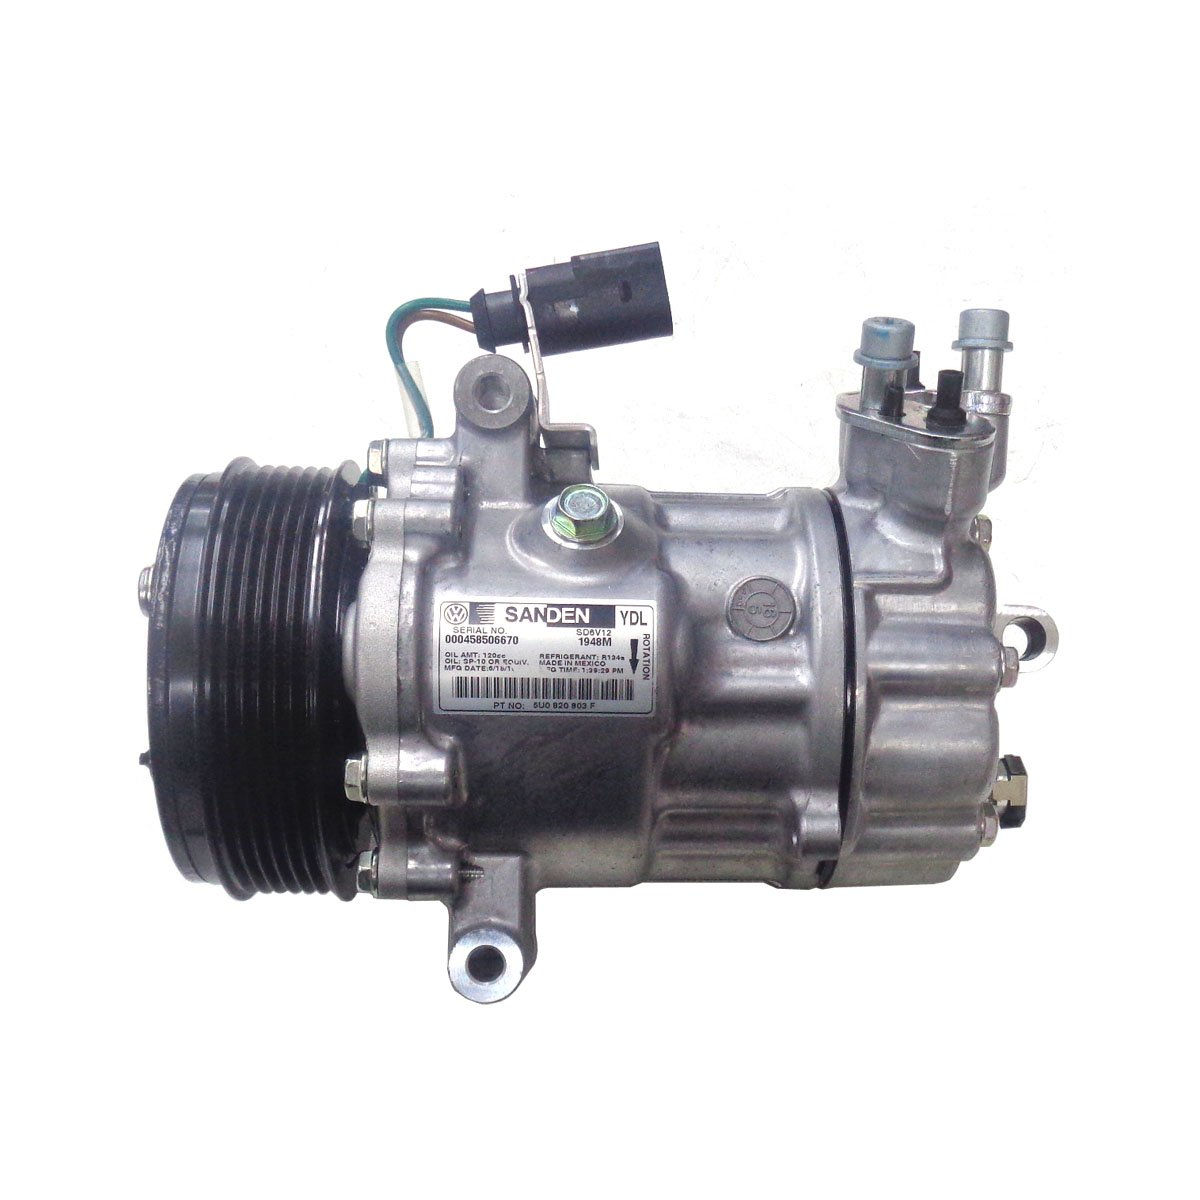 Compressor do Ar Condicionado Vw 1.6